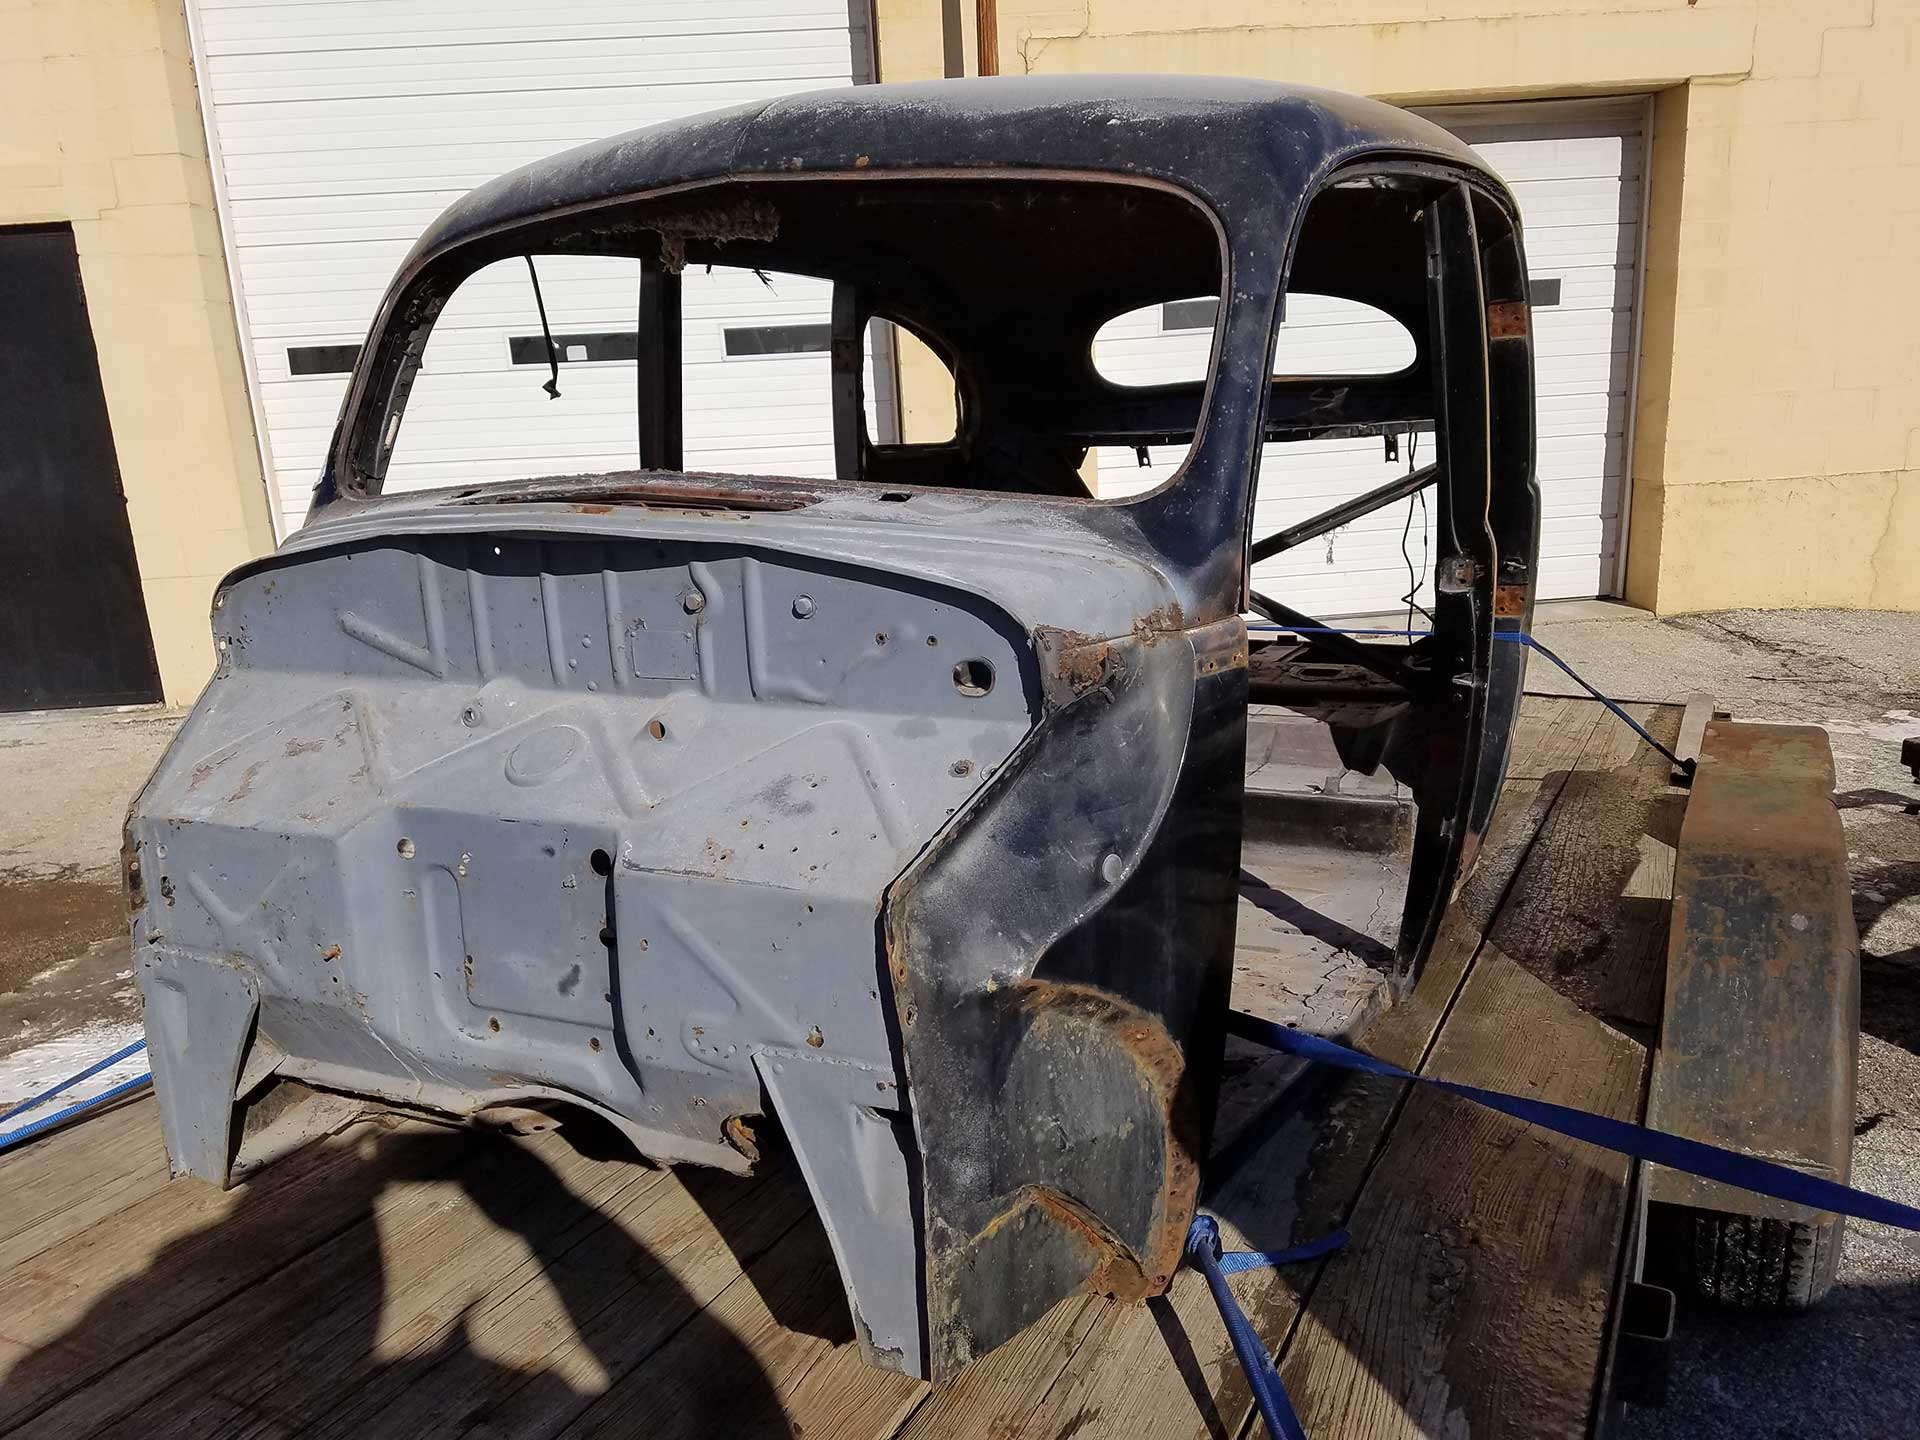 restoration of body of vintage car